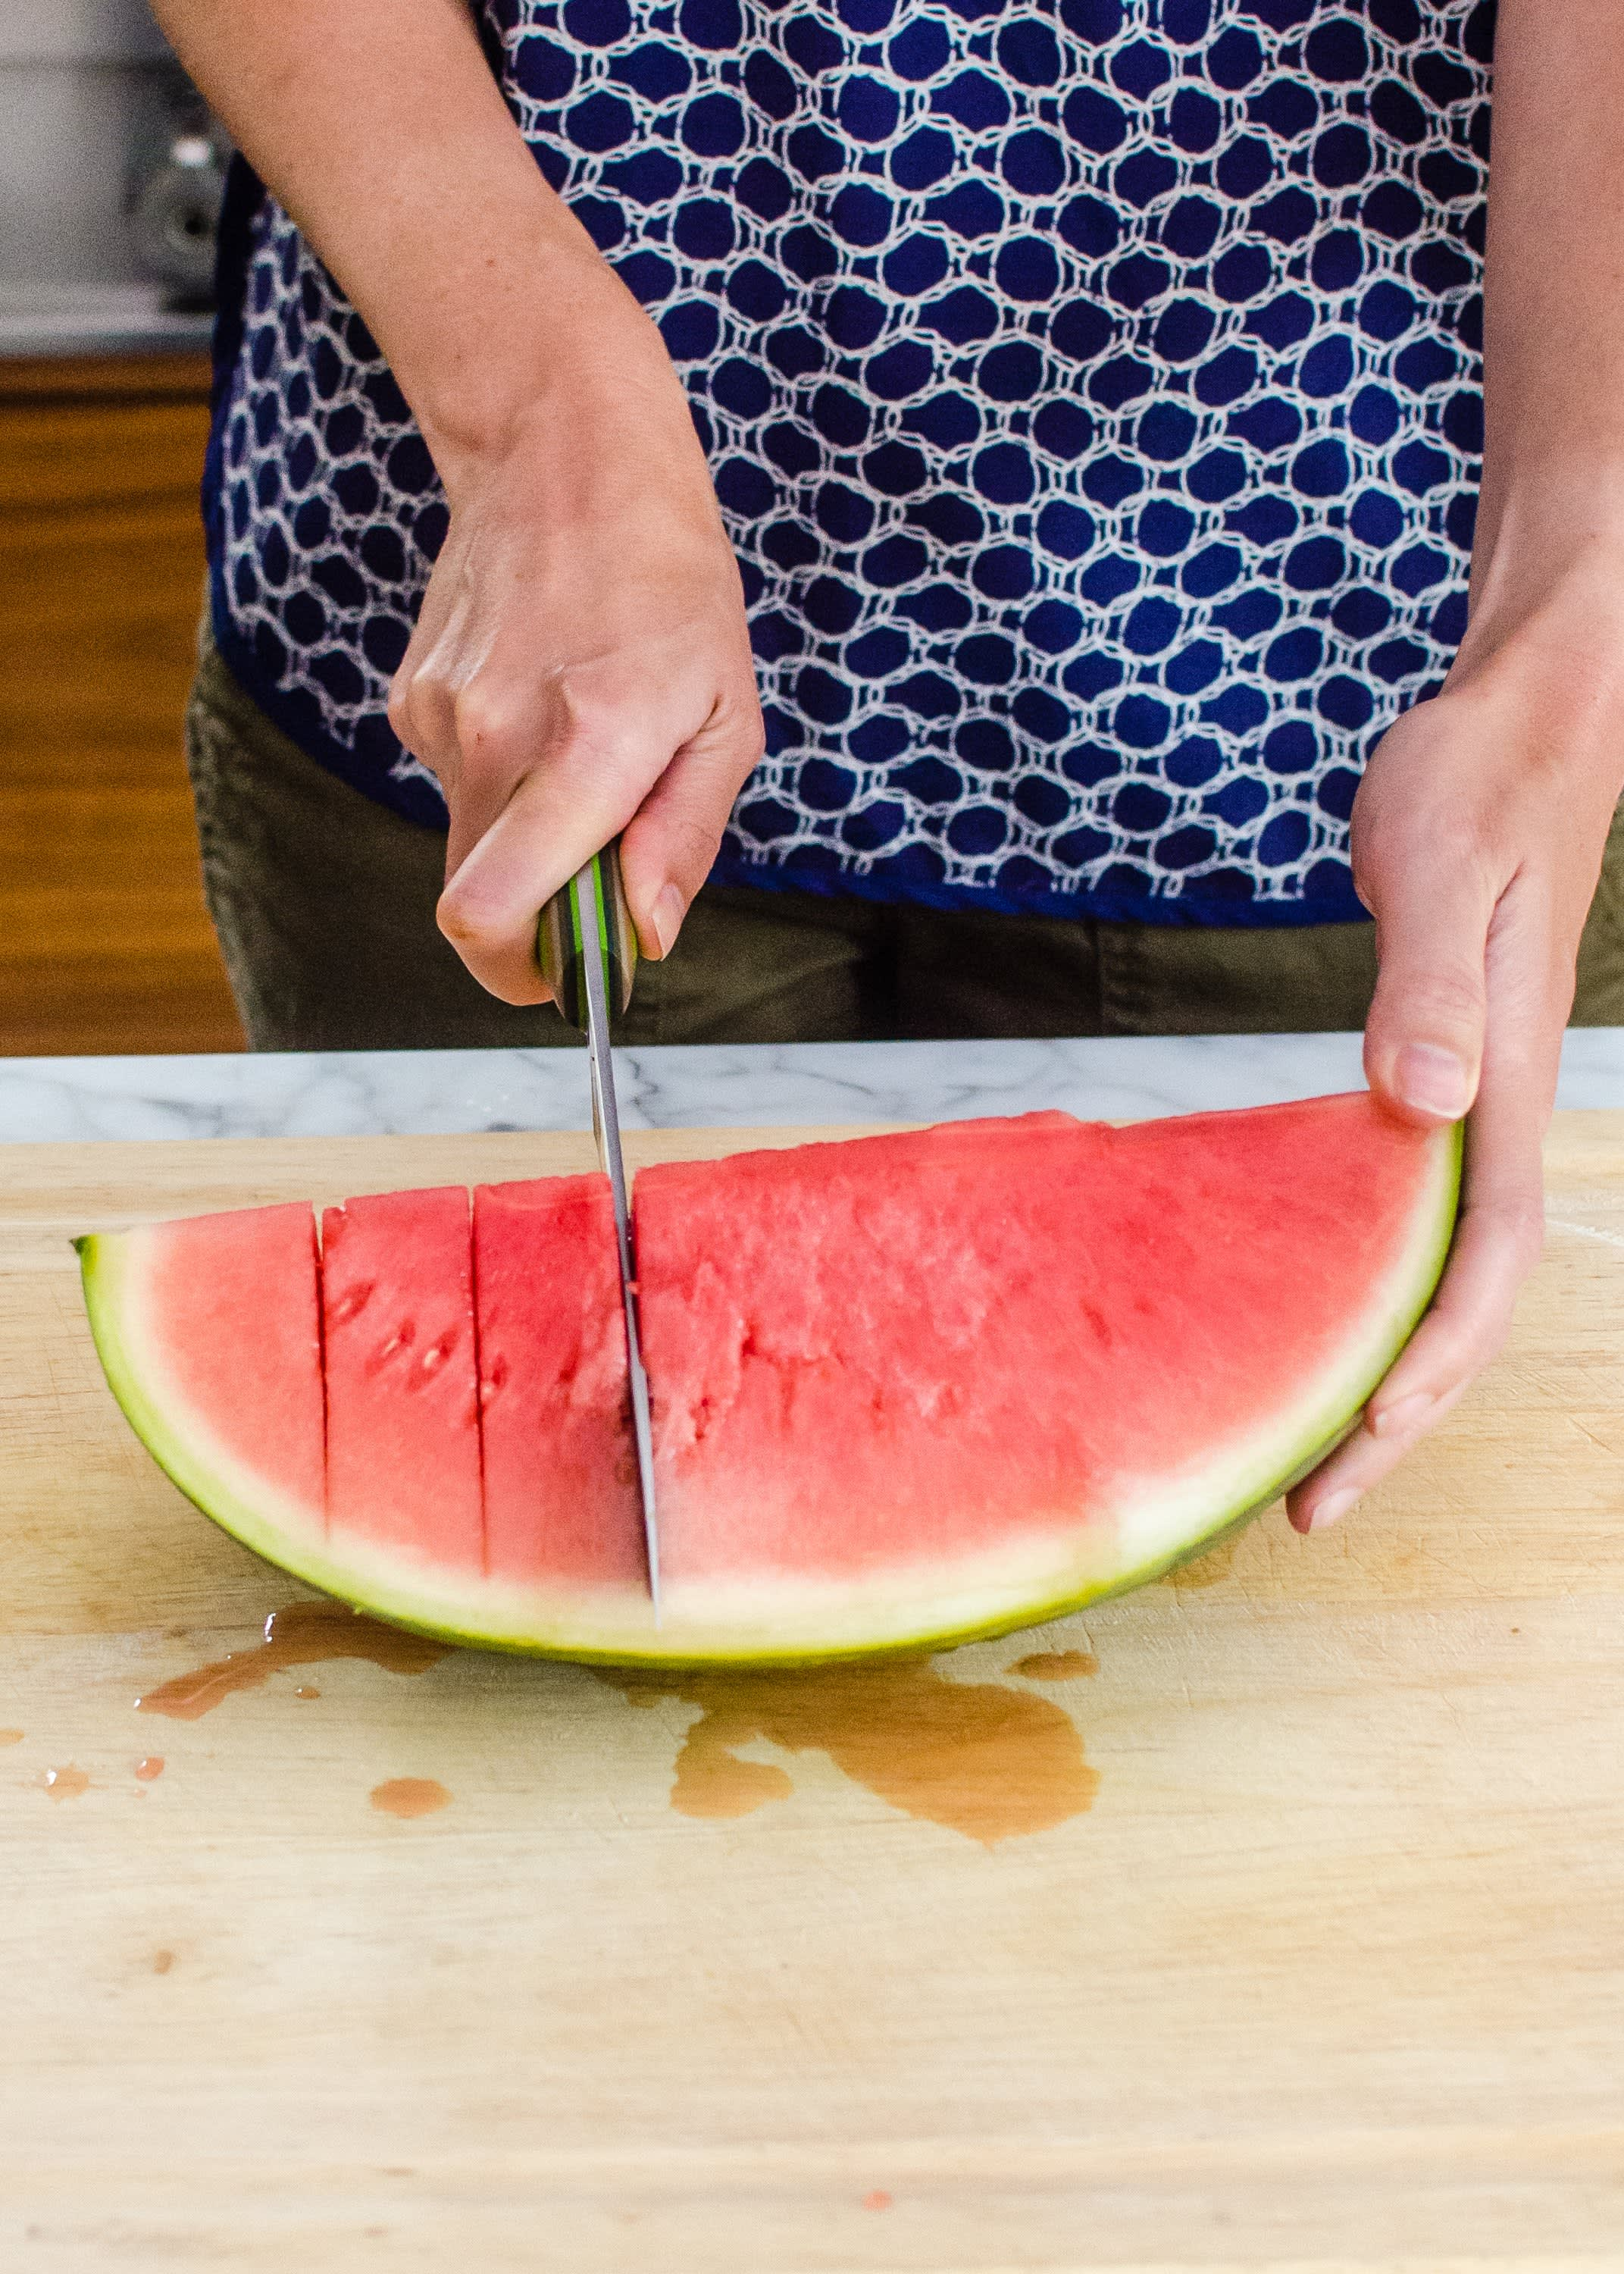 How To Cut Up A Watermelon Step By Step Tutorial Kitchn